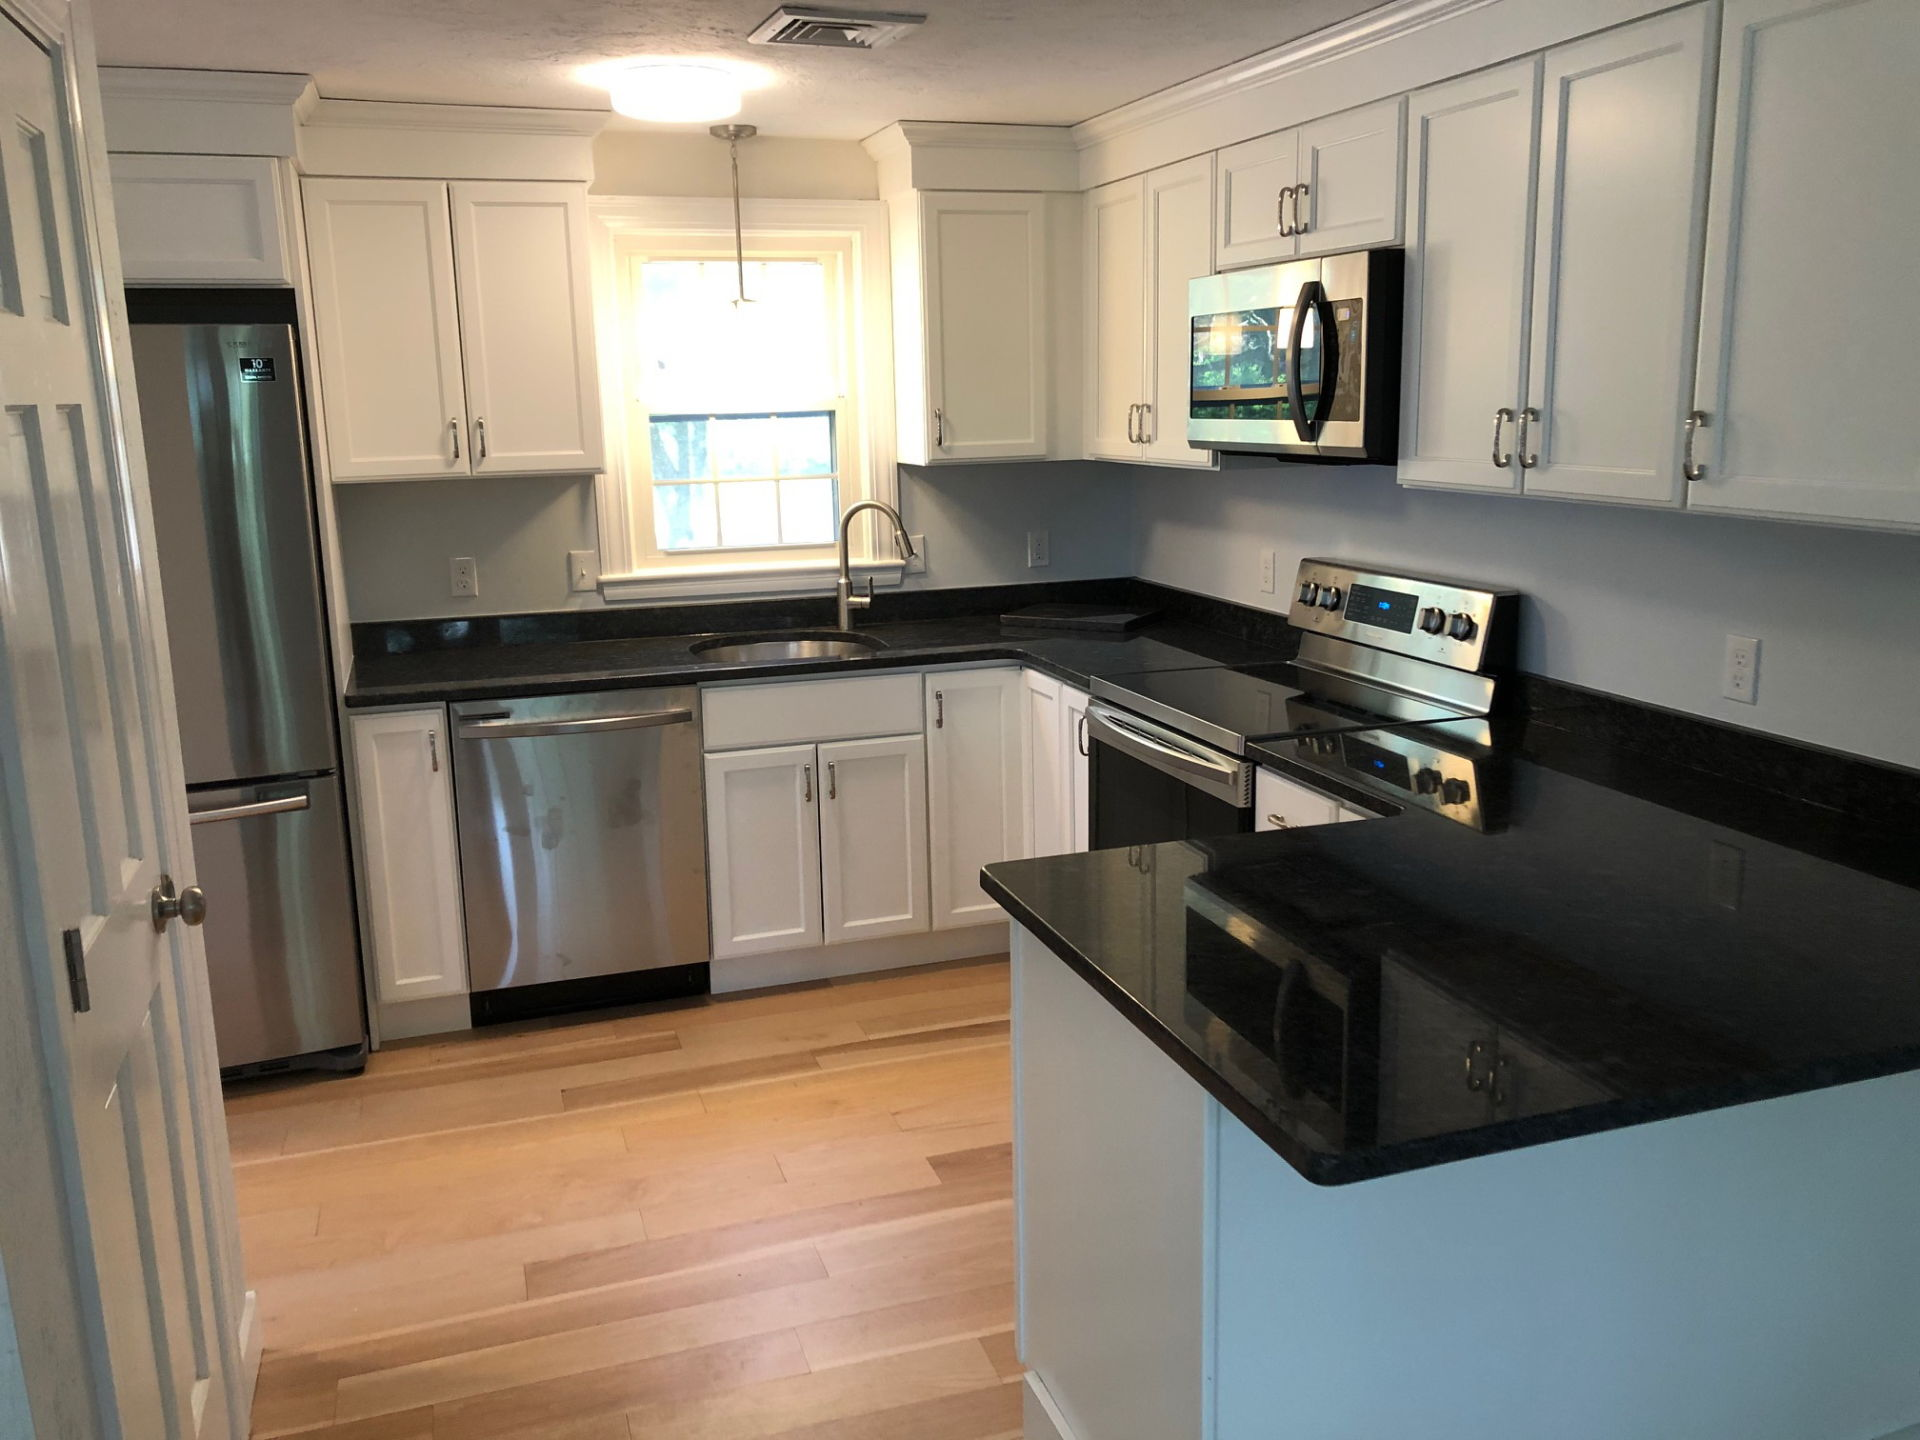 Renovated Plymouth condo to hit market this weekend